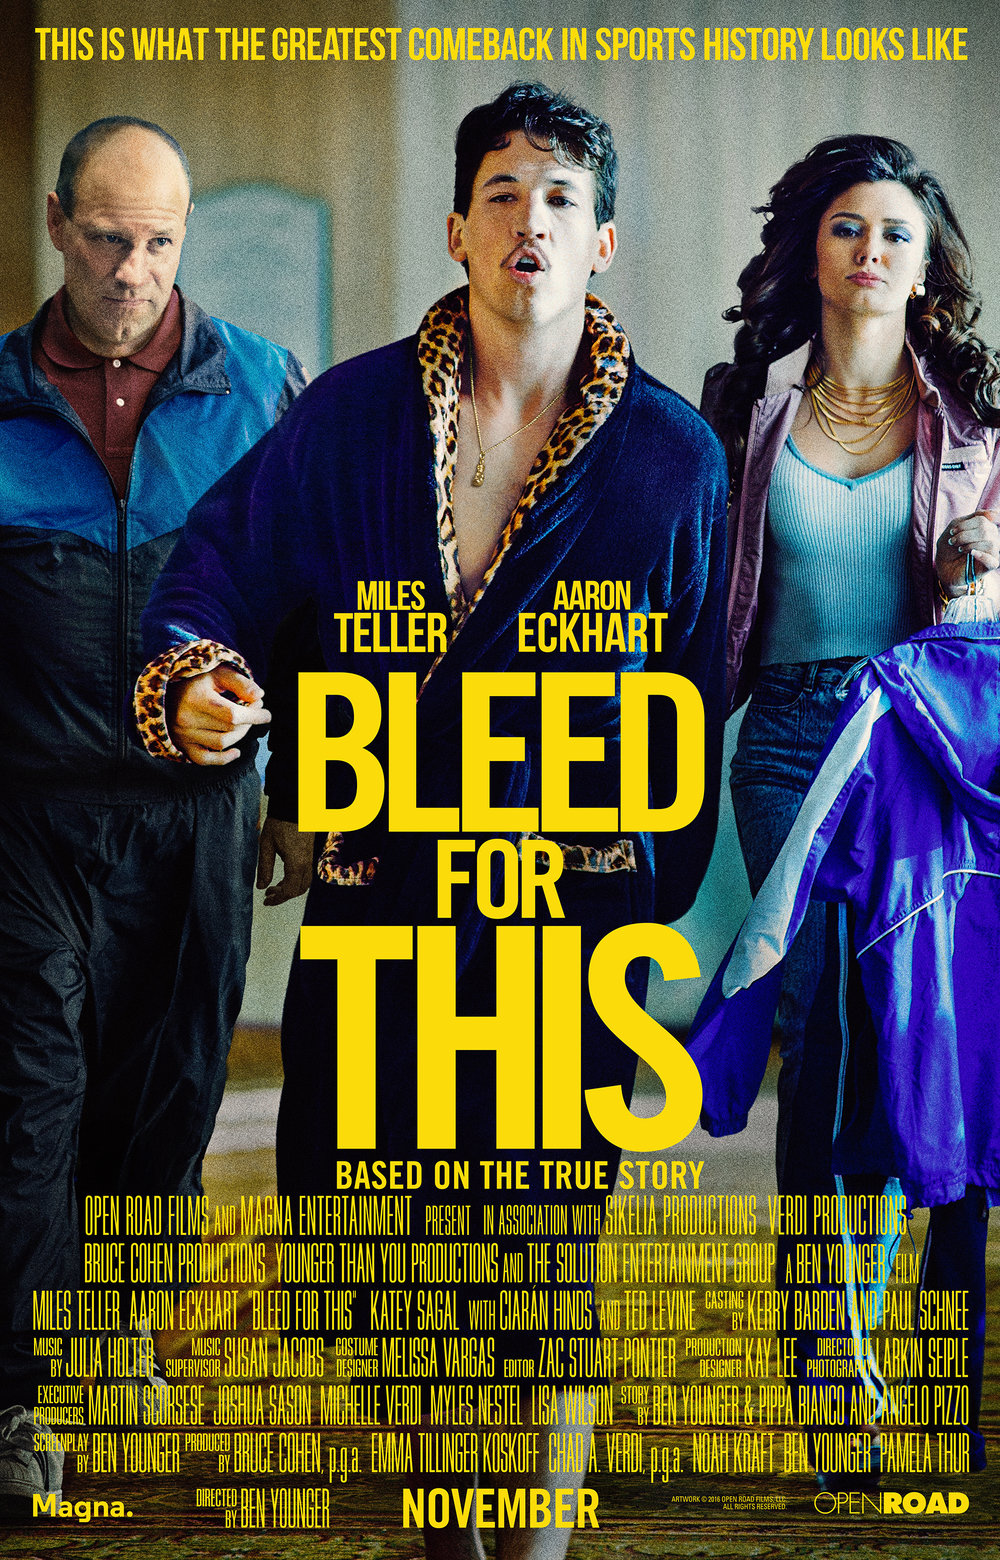 Bleed For This - Boxing movie